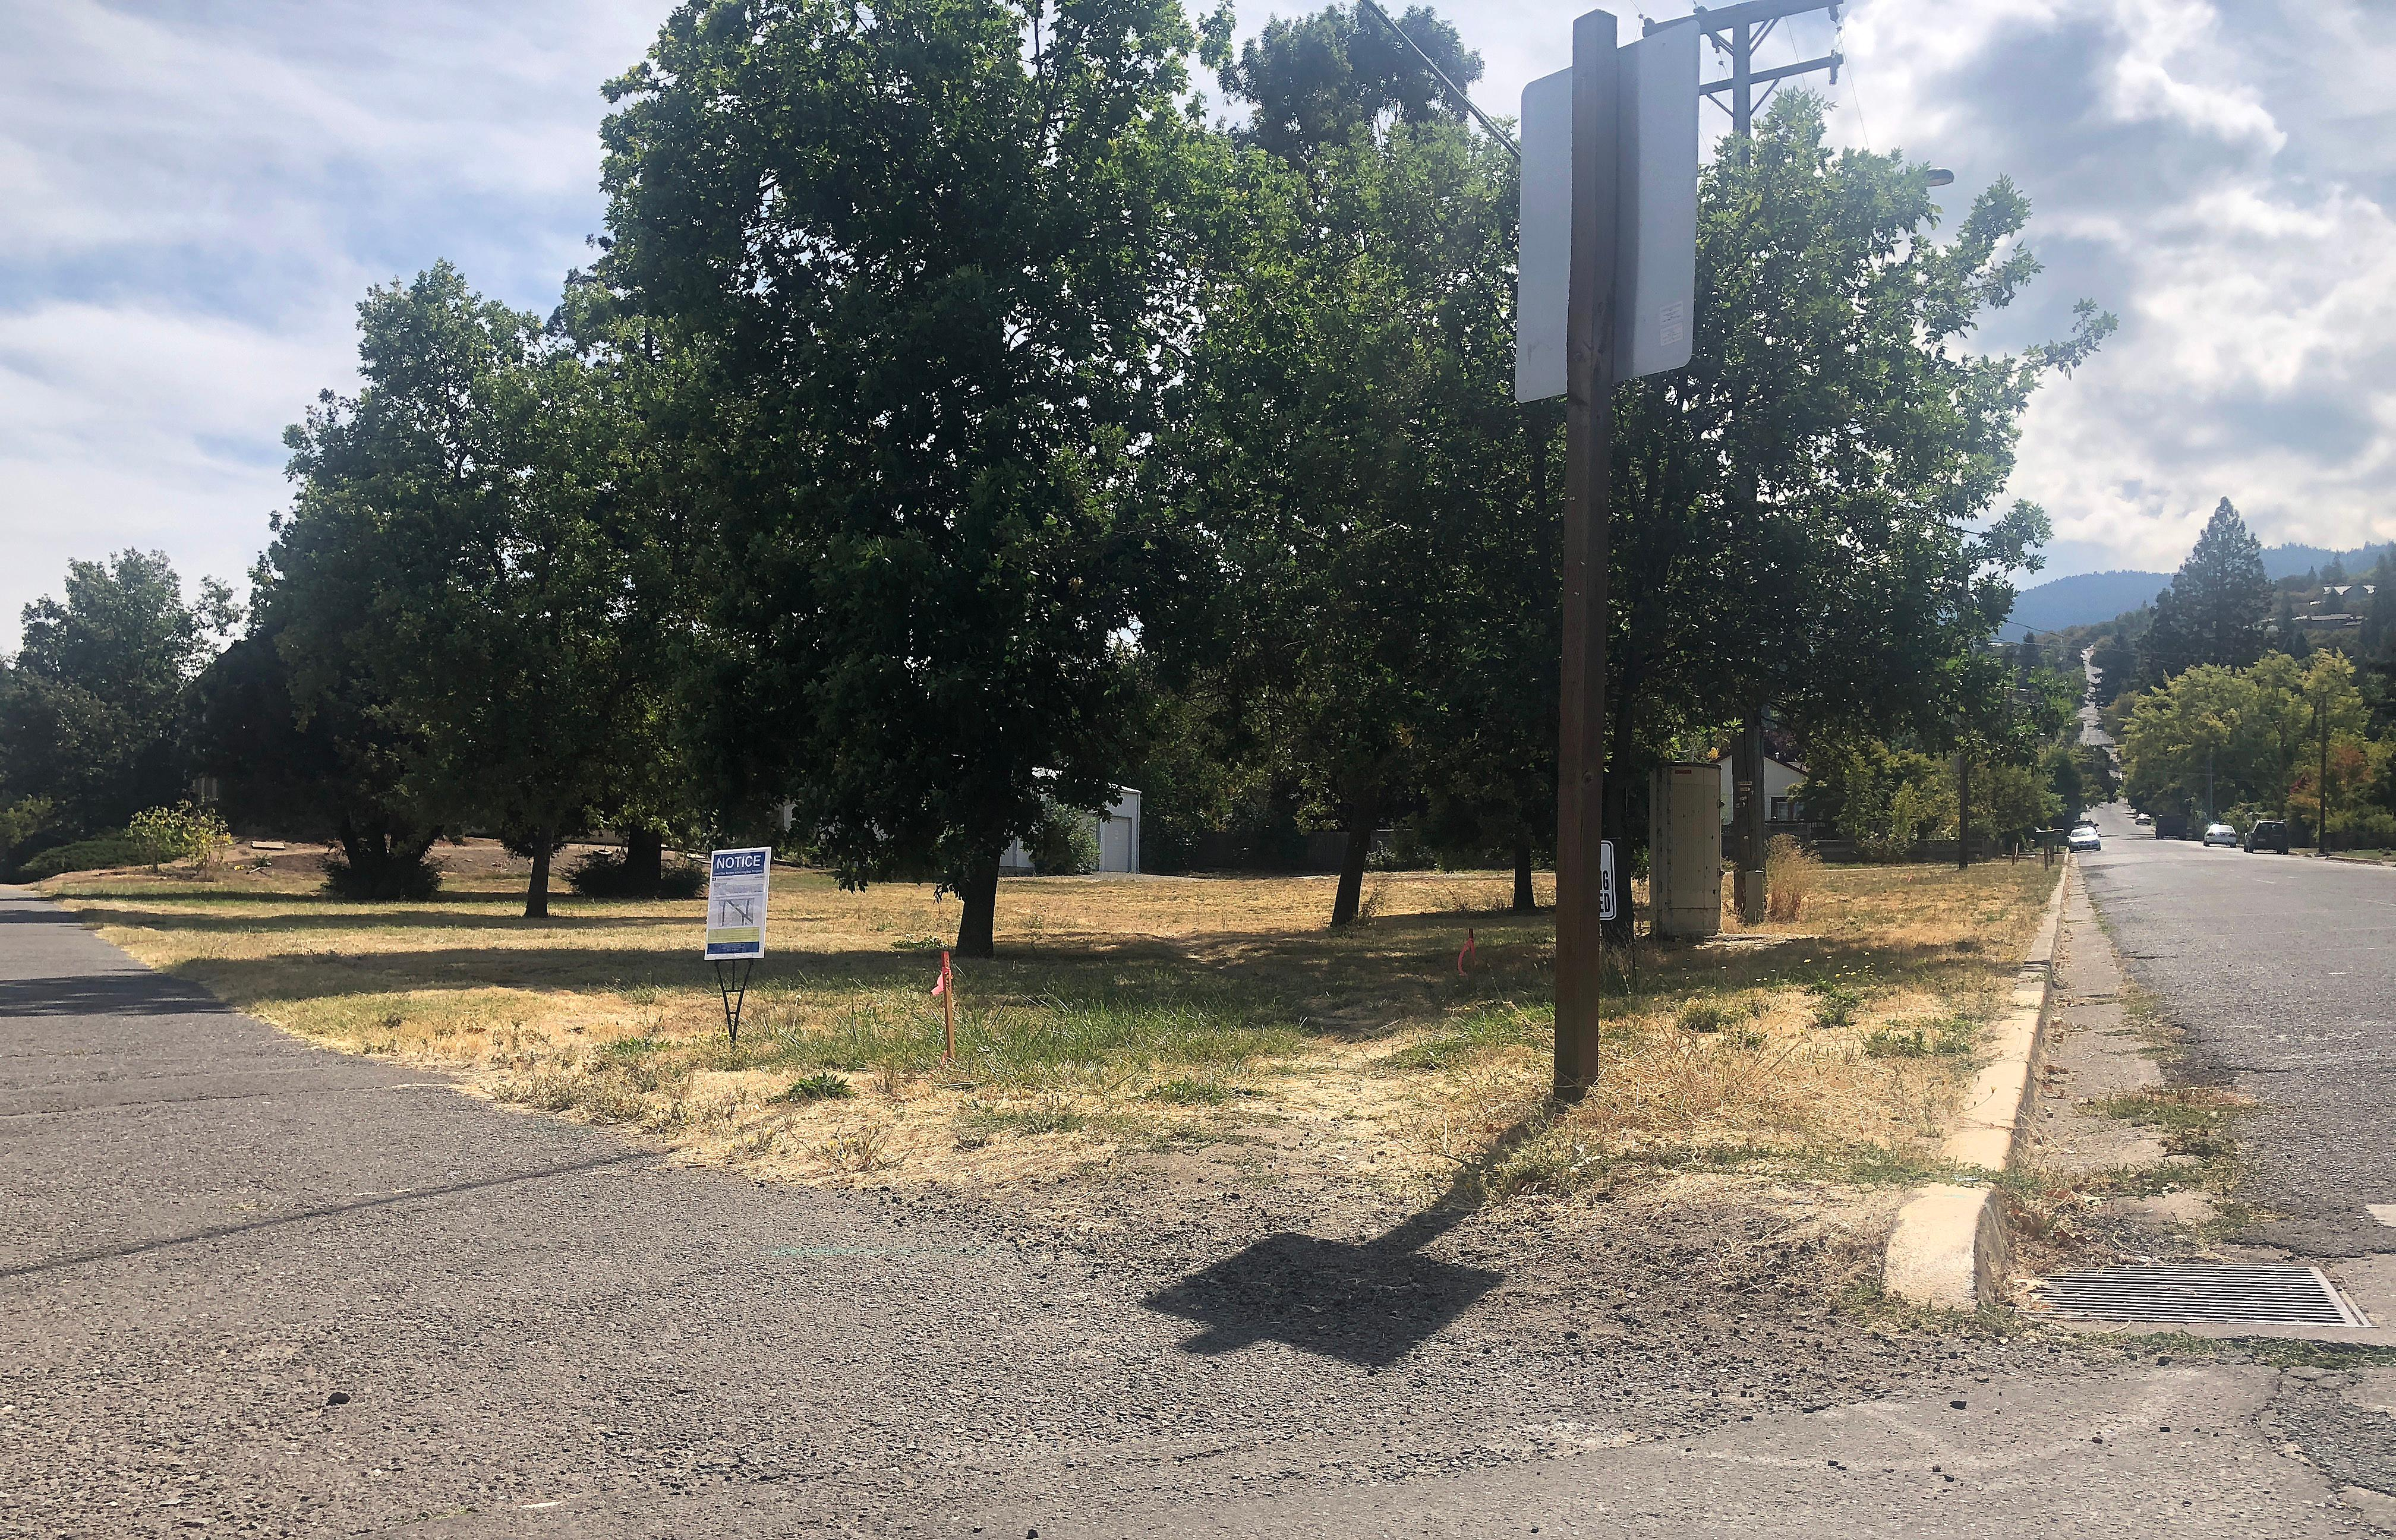 Daily Tidings / Bert Etling<br>A 15-unit, 60-bedroom apartment building is proposed for a corner lot bordered by Park Street, at right, and Siskiyou Boulevard, out of the picture frame to the left.